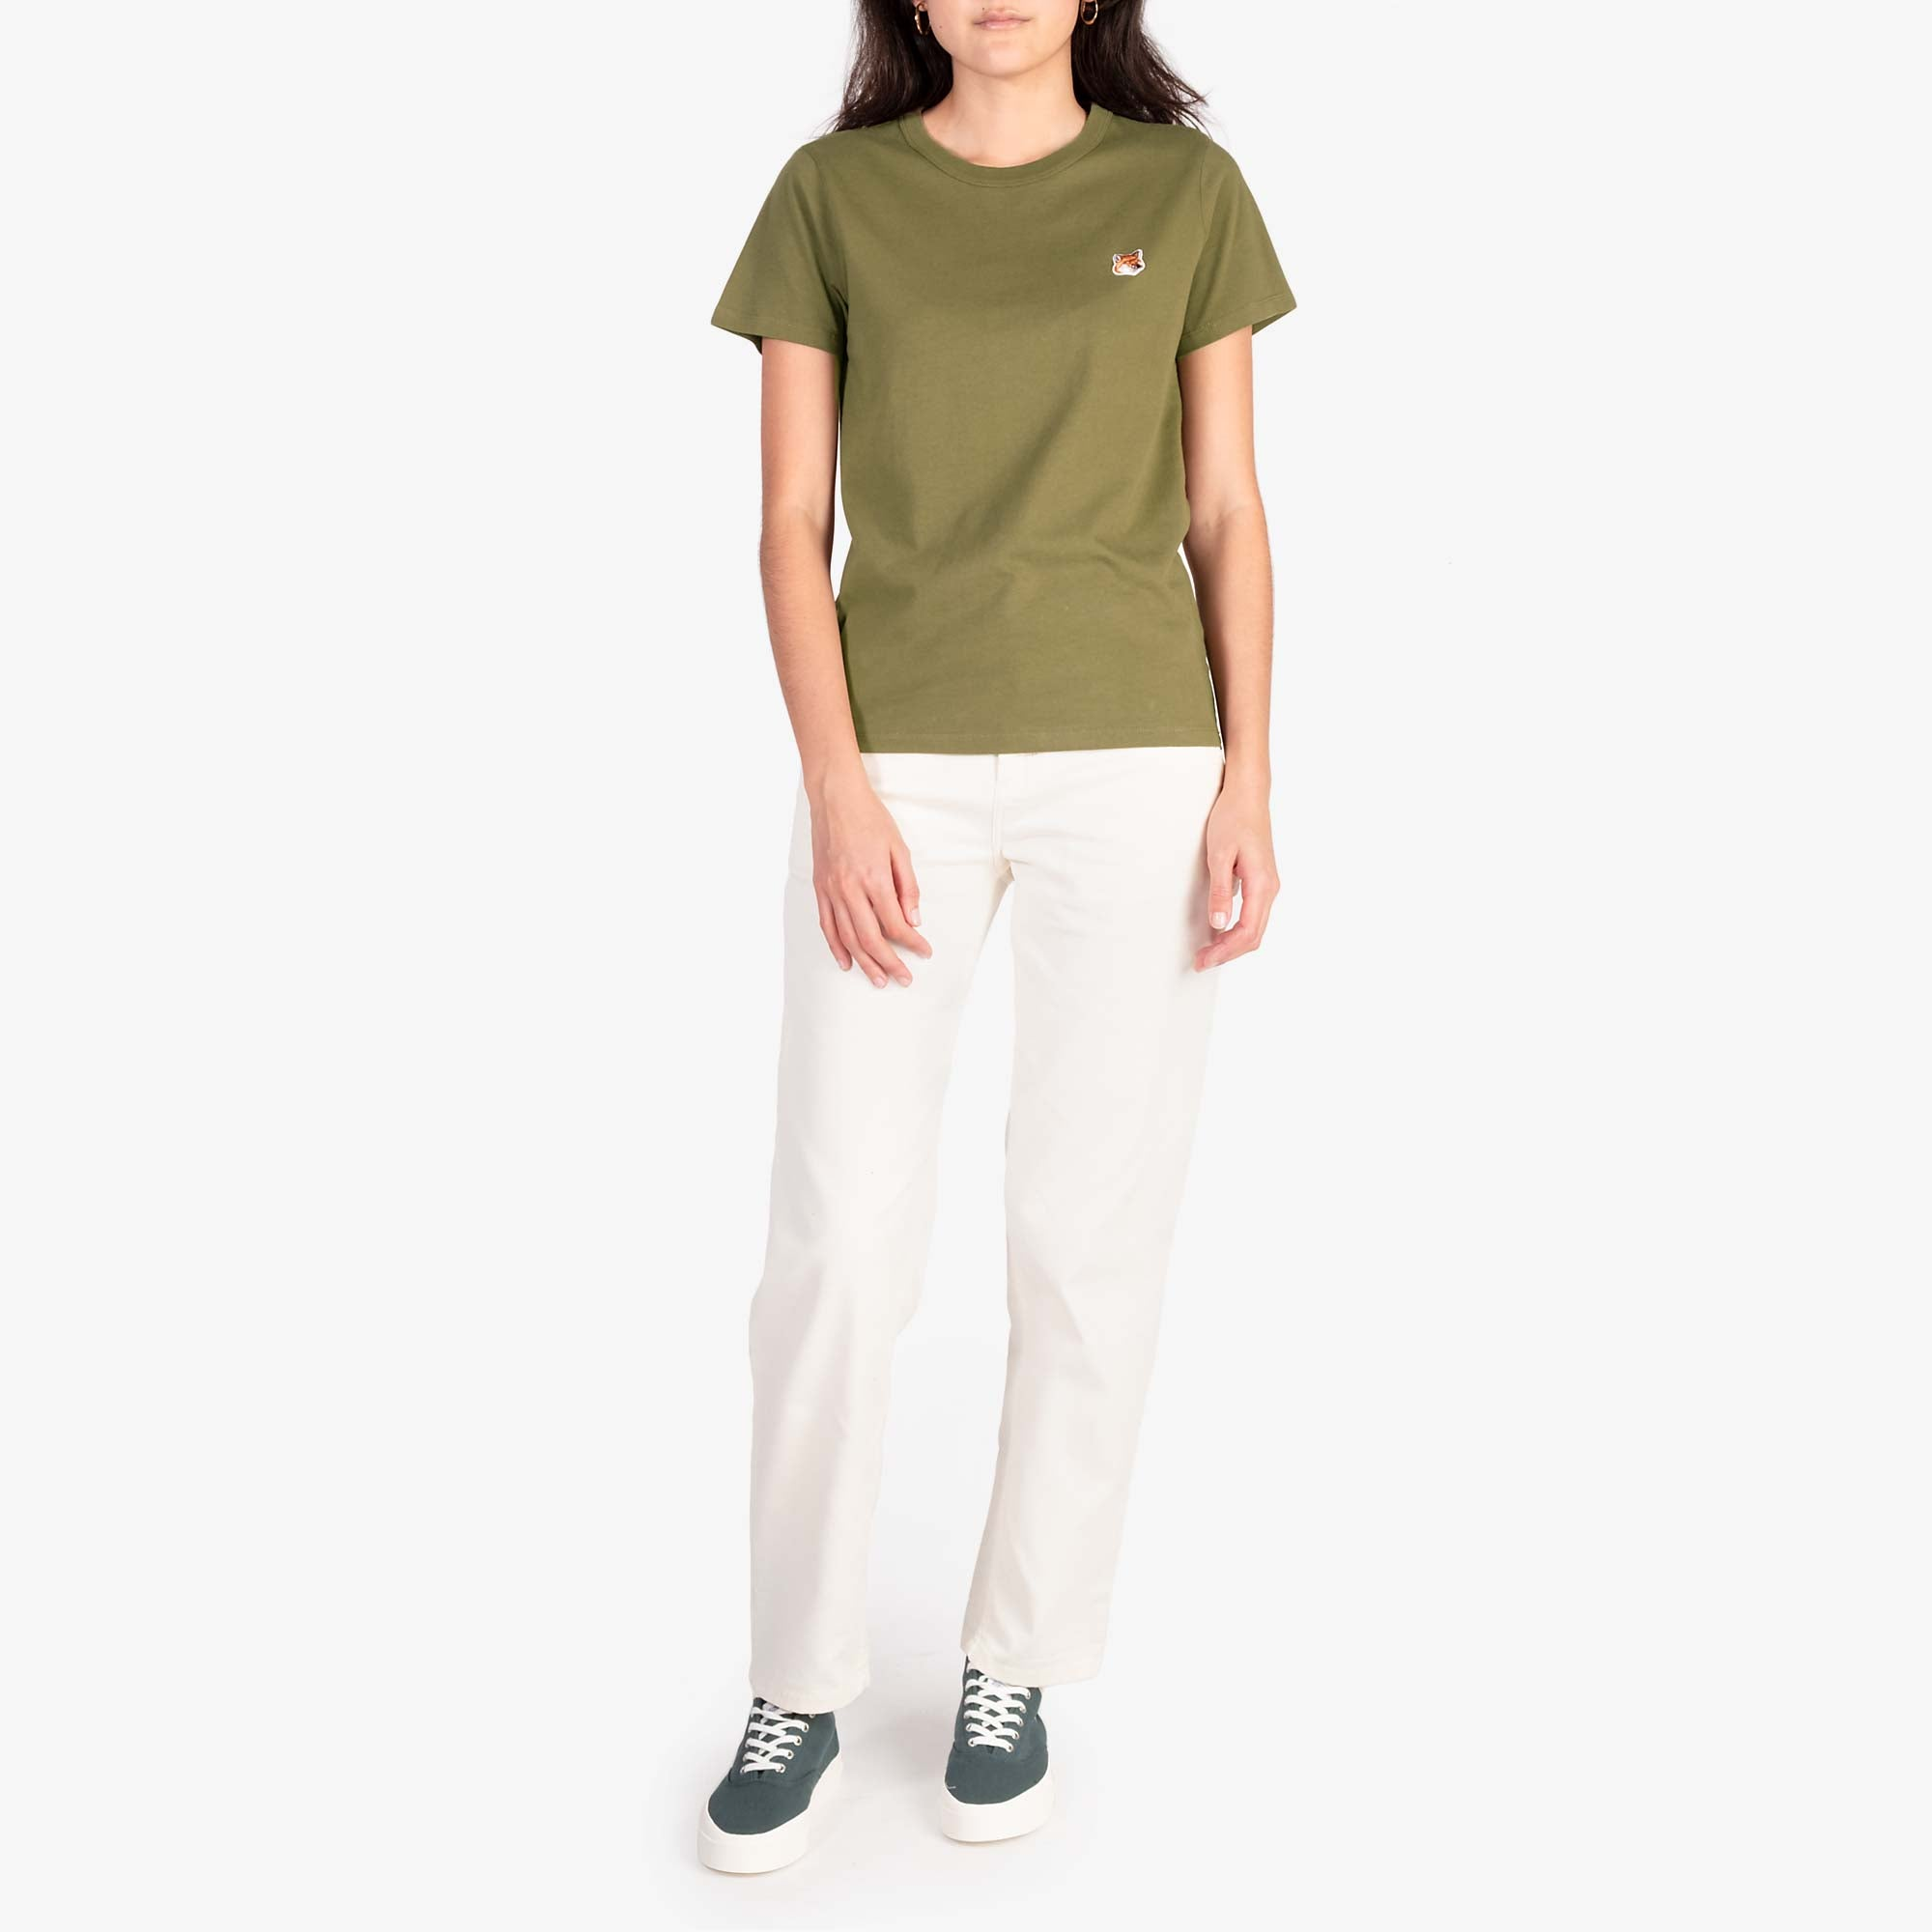 Maison Kitsune Women's Fox Head Patch Tee - Khaki 3